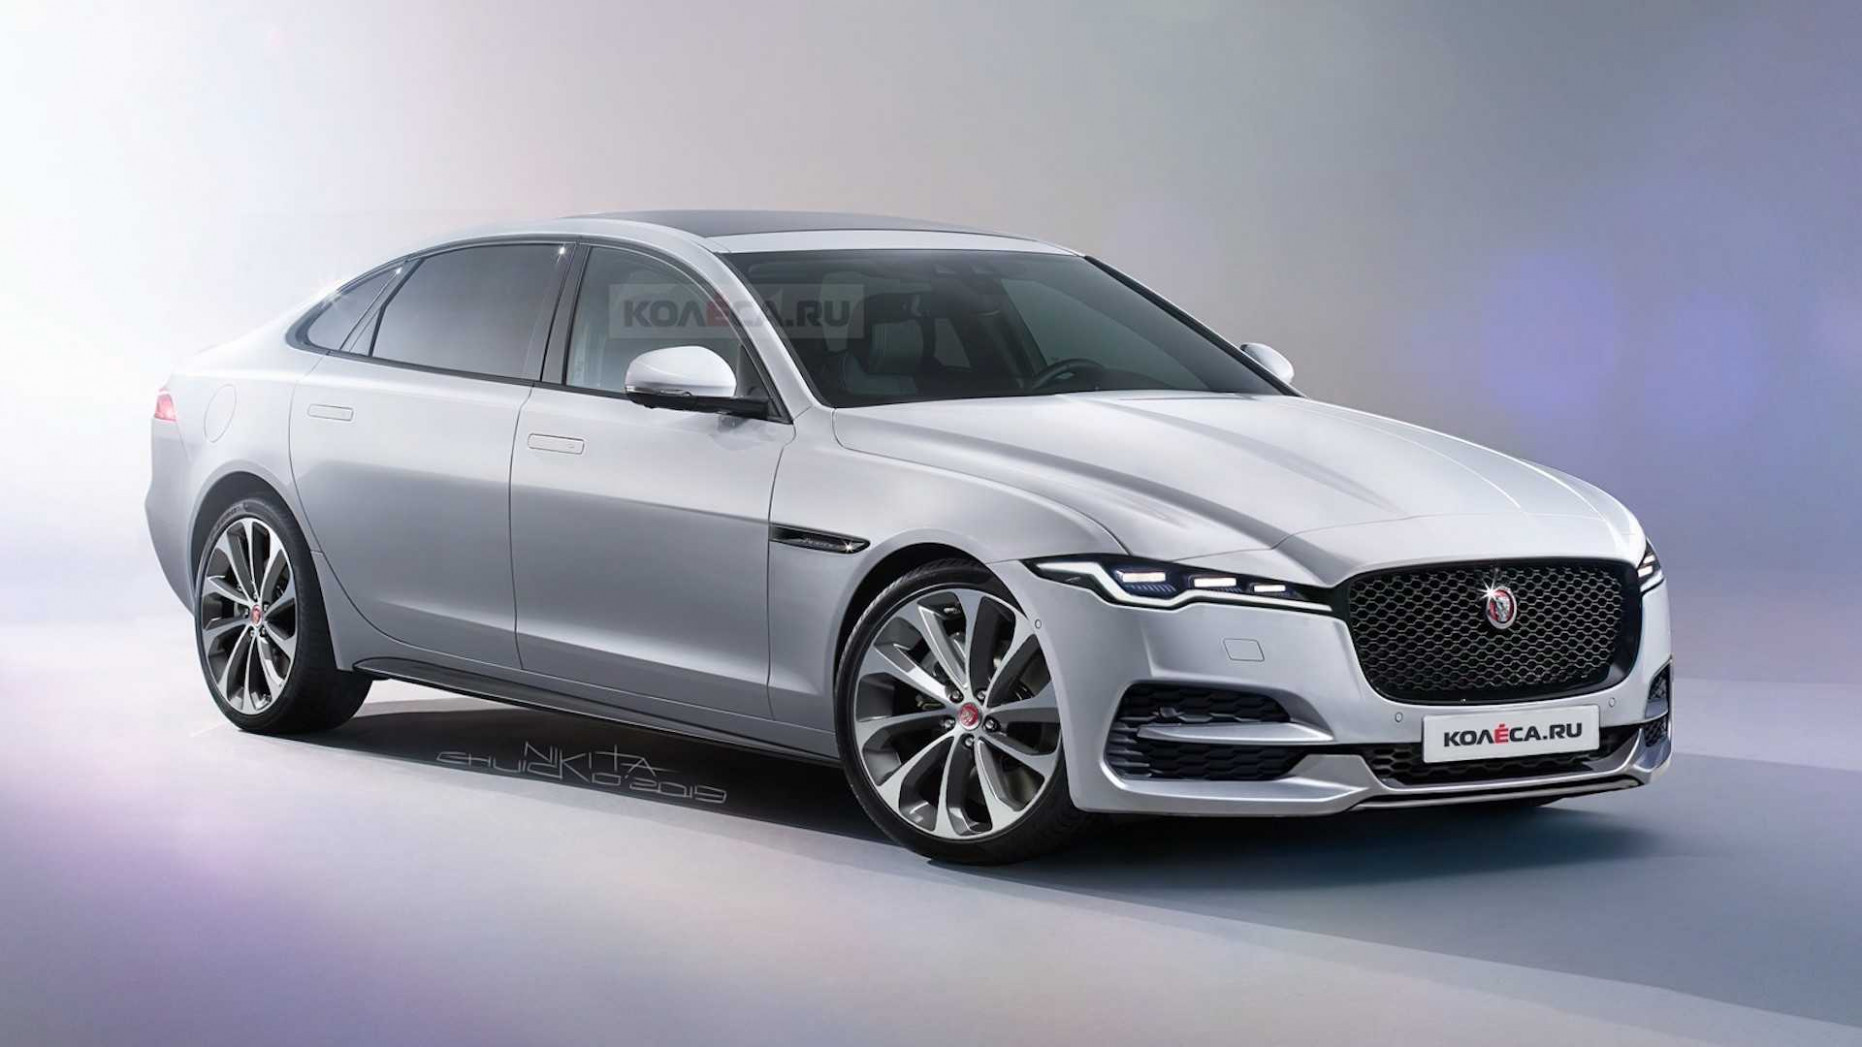 10 Jaguar XJ Rendered With Fierce Fascia But We Expect More - jaguar recall 2020